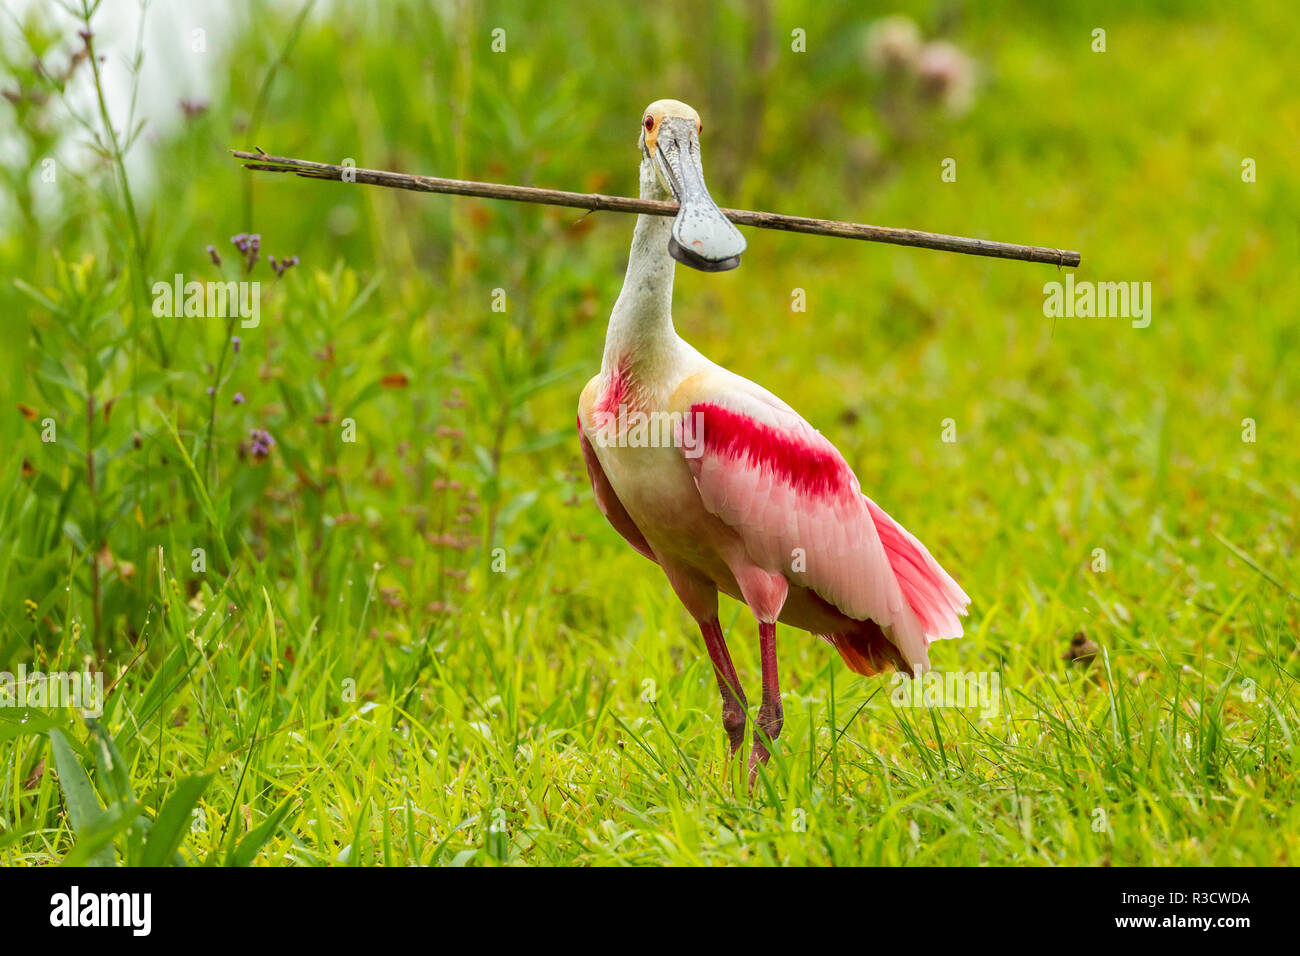 USA, Louisiana, Jefferson Island. Roseate spoonbill with stick for nest. - Stock Image